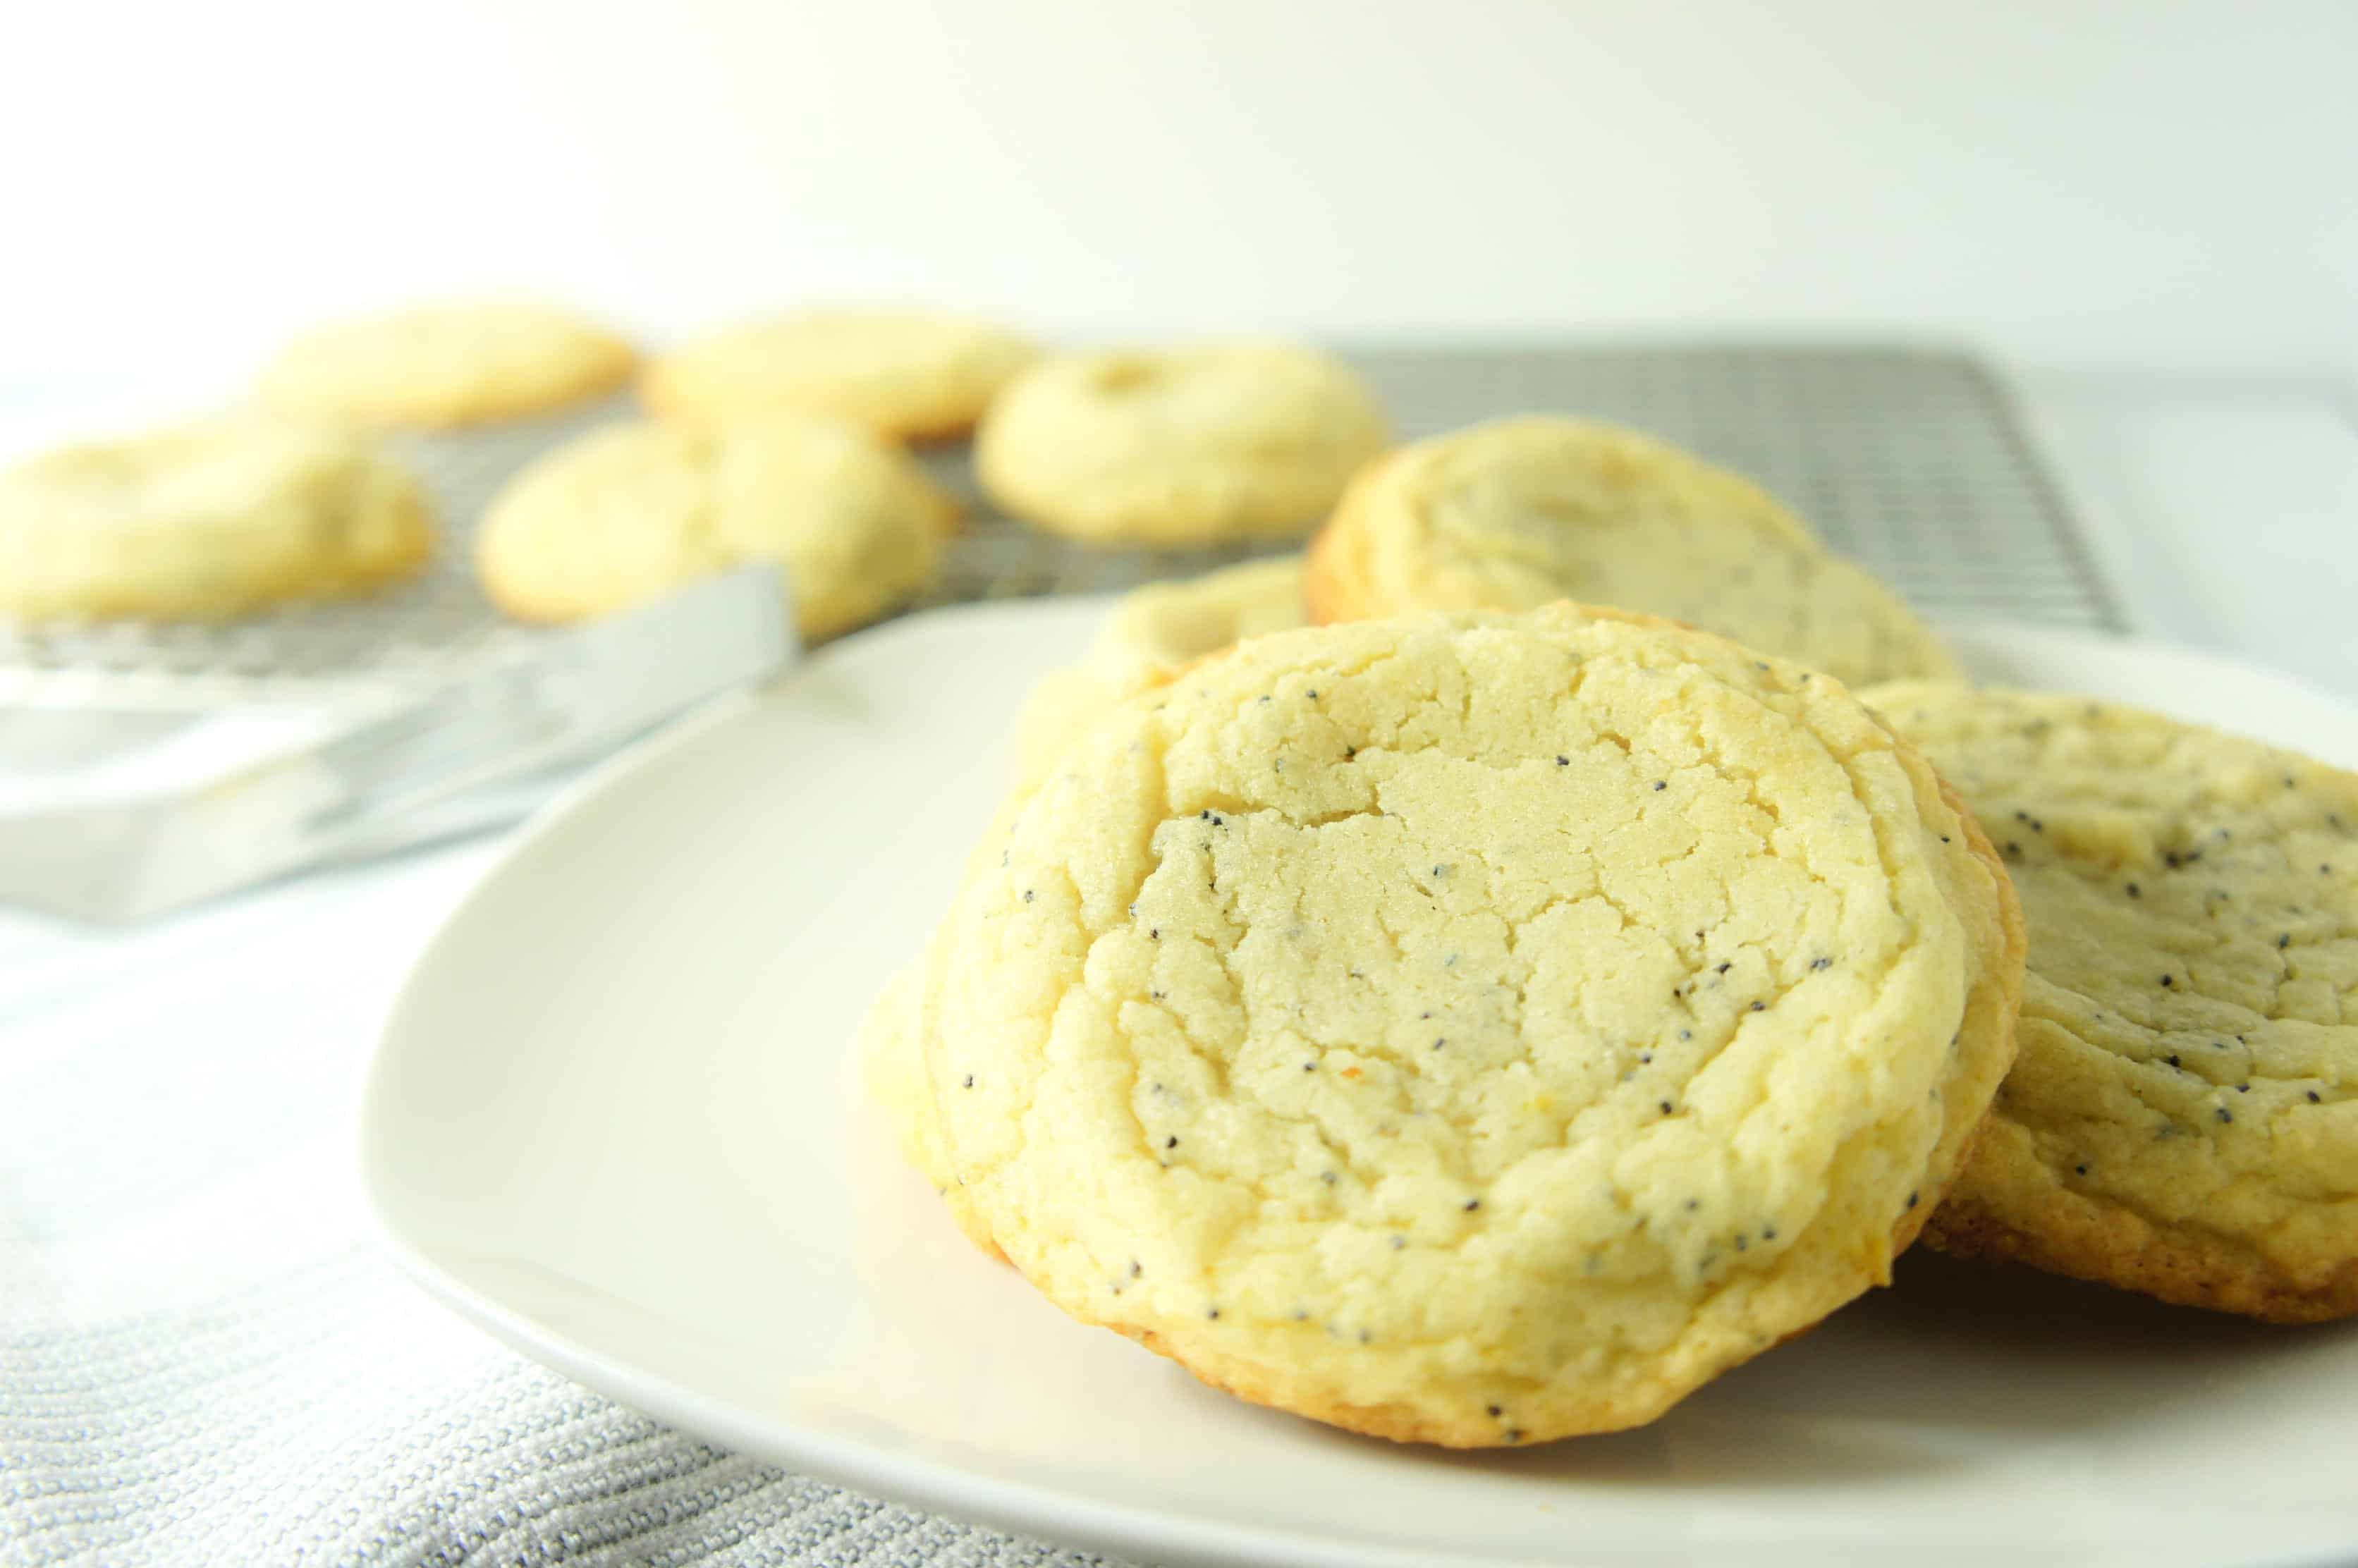 Chewy Lemon Sugar Cookies are pale, chewy and sugary.